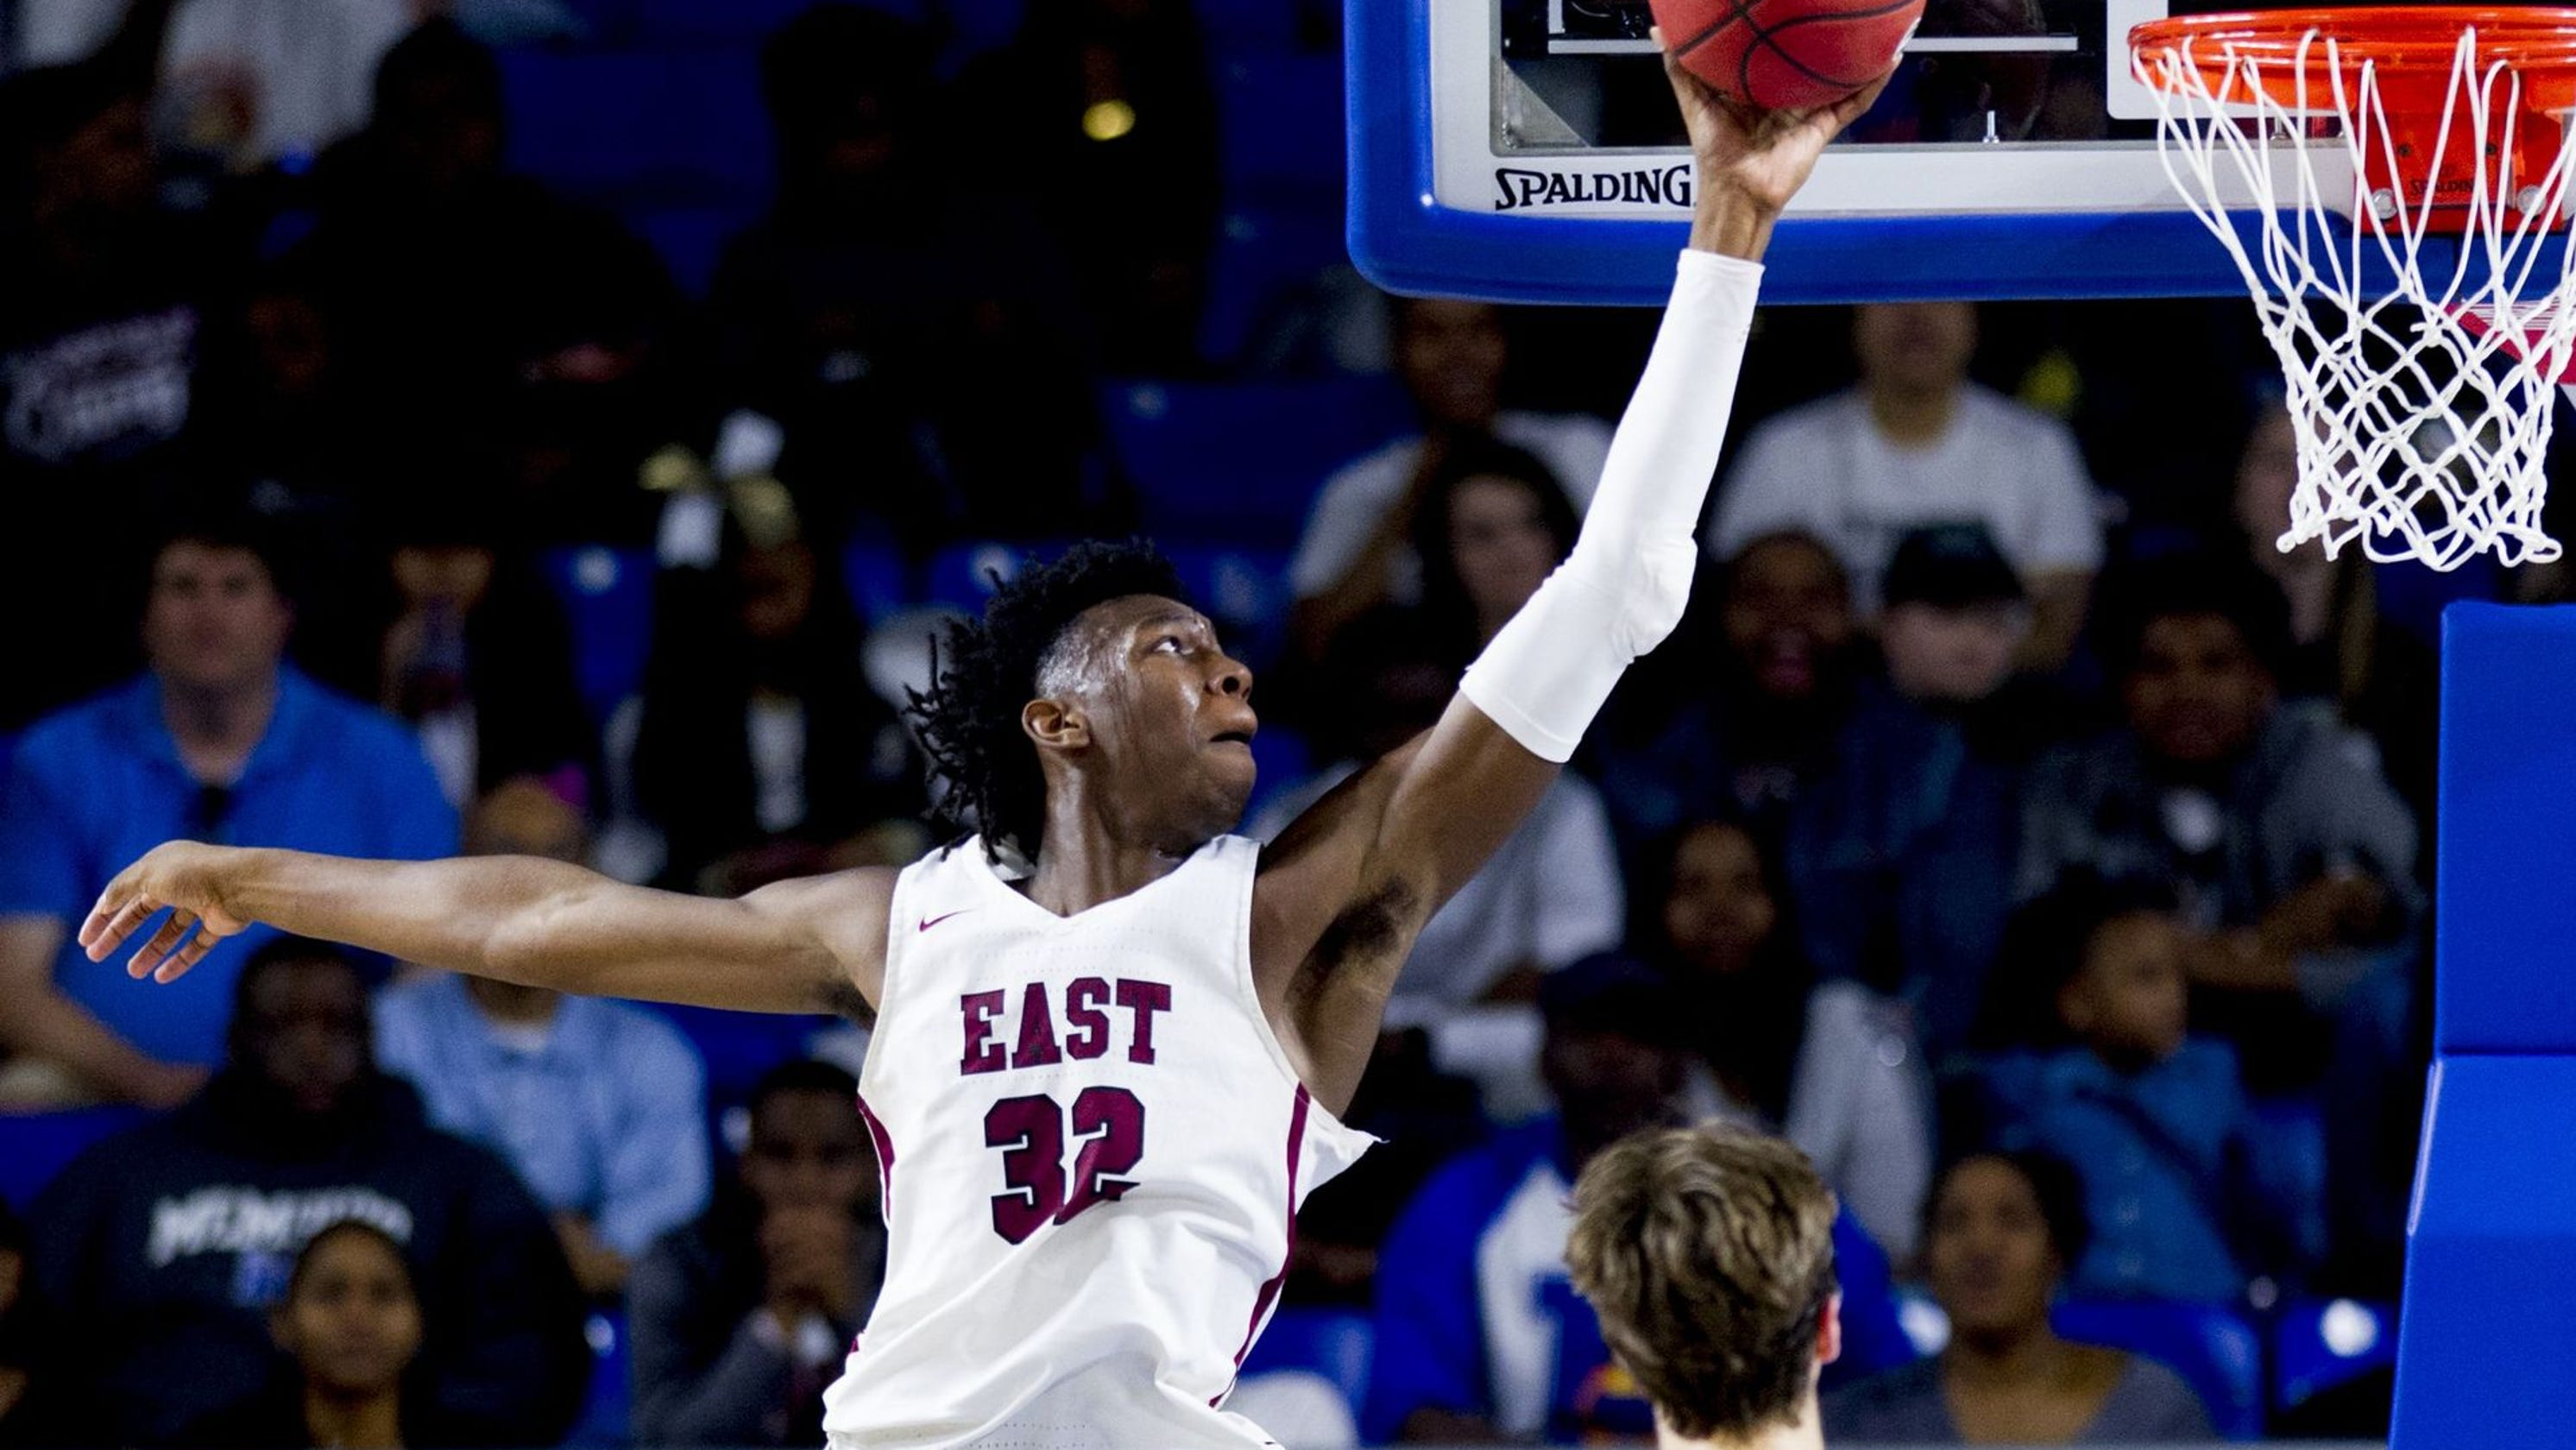 a closer look at kentucky recruiting with loss of james wiseman to